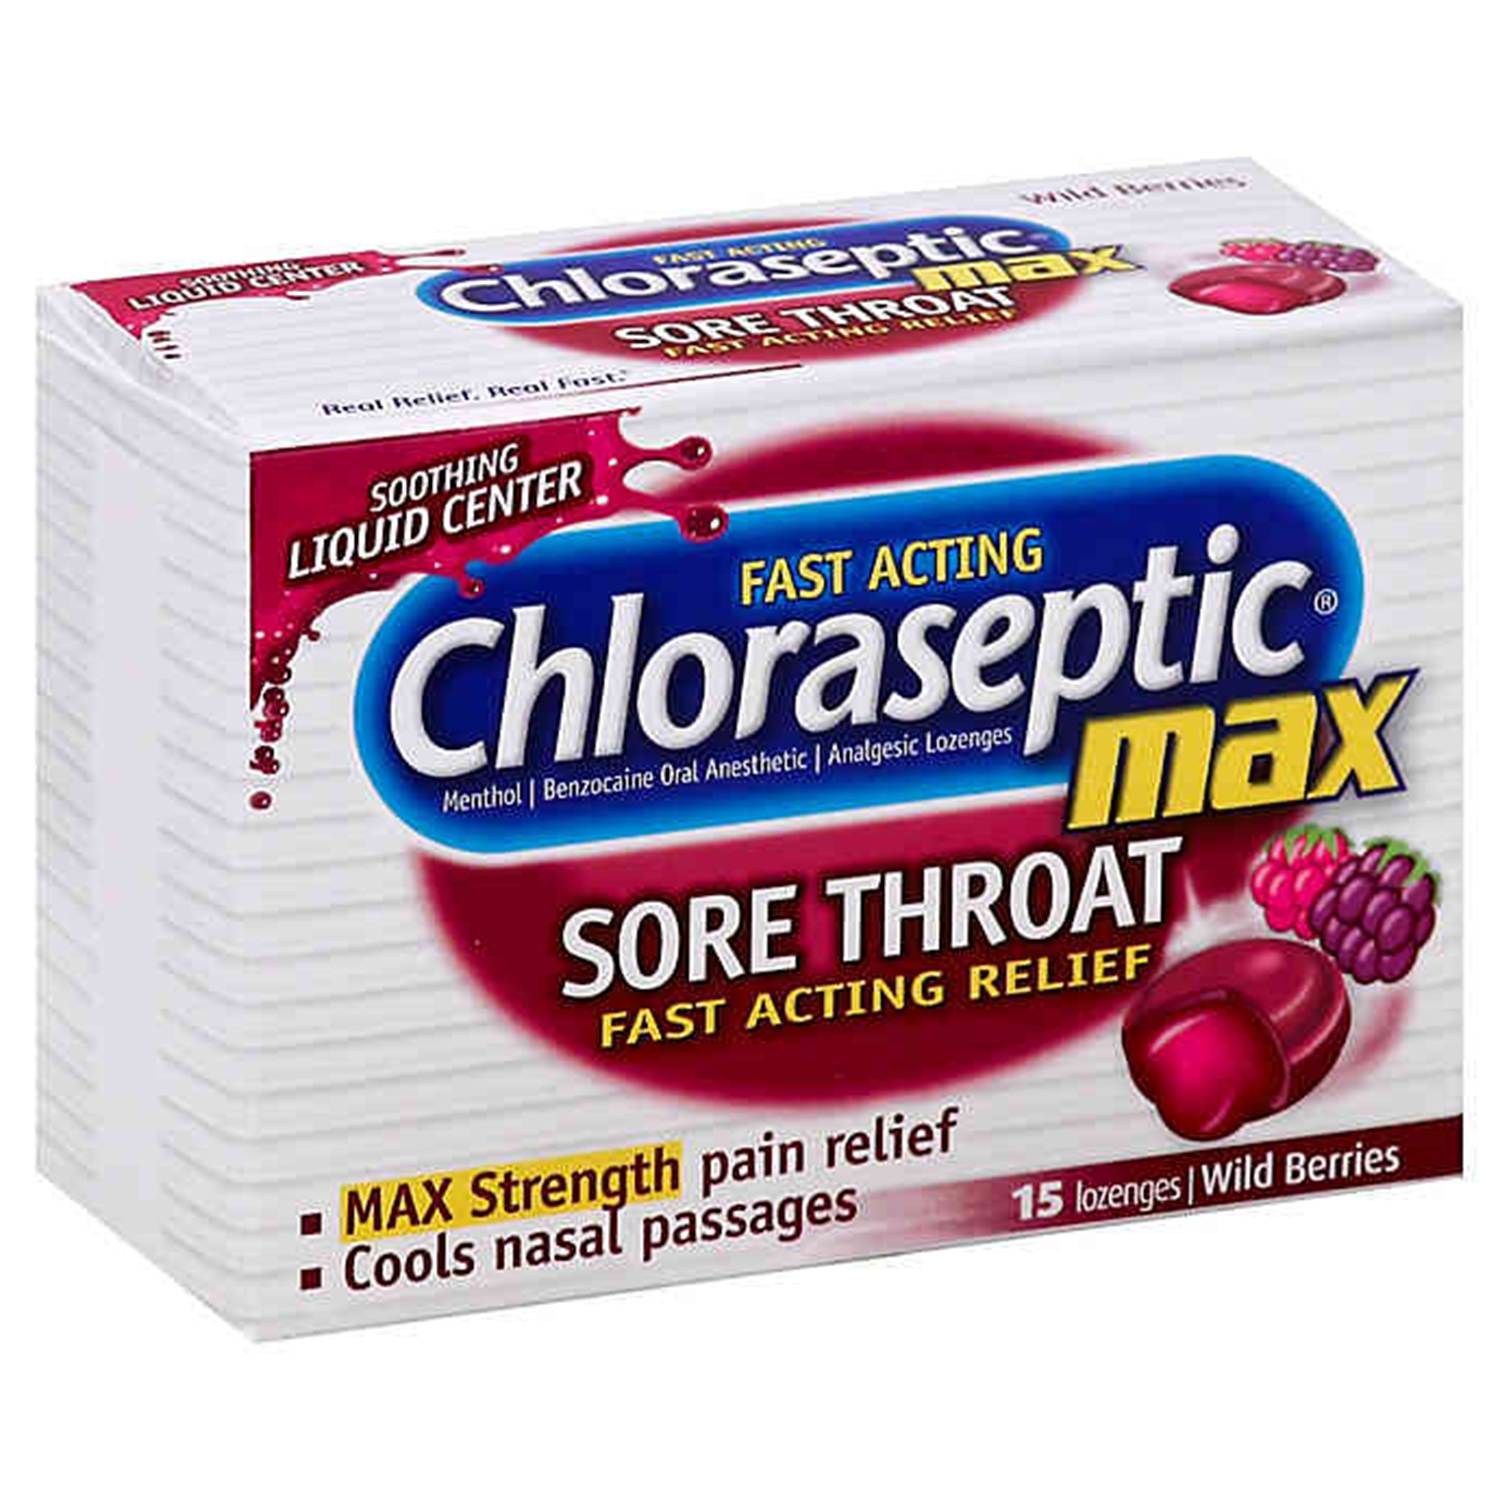 Chloraseptic cough drops